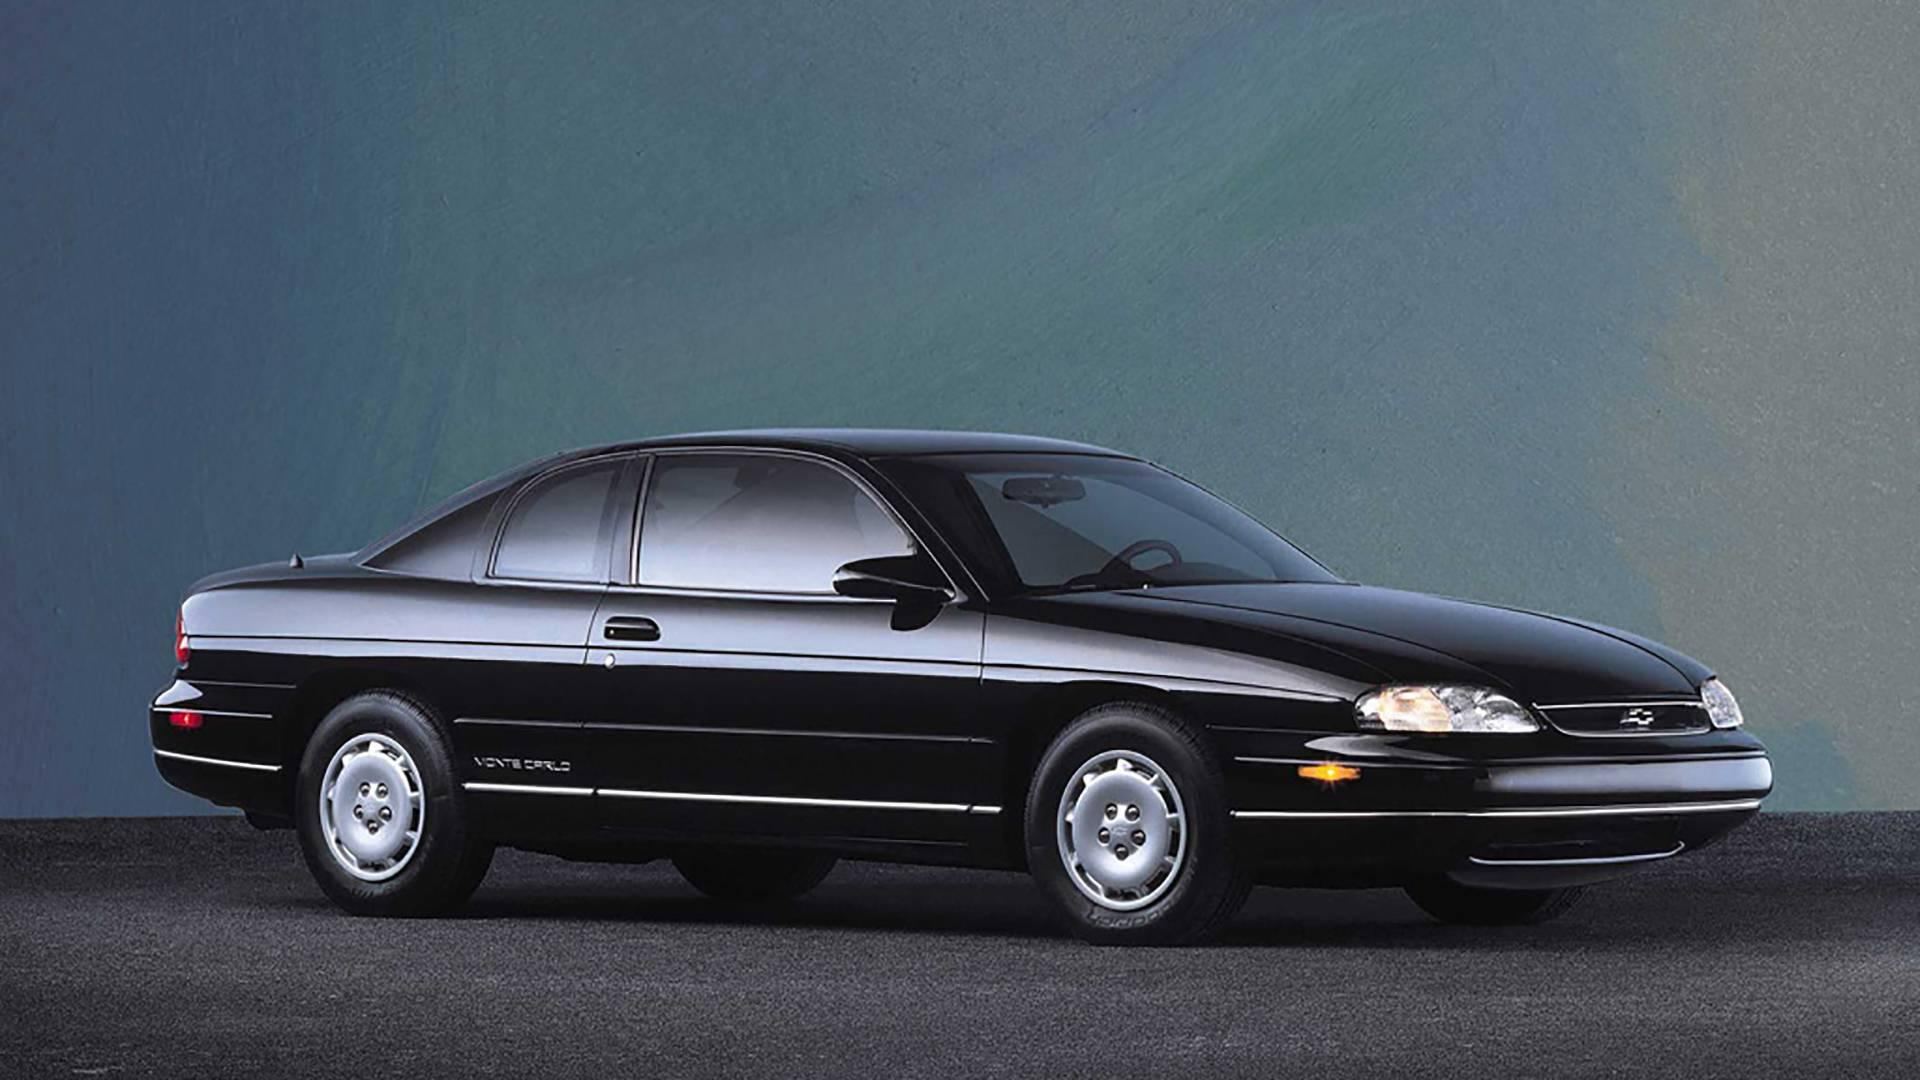 """<p>The 1995 model year marked the return of the Monte Carlo nameplate after <a href=""""https://www.motor1.com/chevrolet/"""" rel=""""nofollow noopener"""" target=""""_blank"""" data-ylk=""""slk:Chevy"""" class=""""link rapid-noclick-resp"""">Chevy</a> discontinued the car in 1988. However, it wasn't the raucous two-door of yesteryear. In 1995, Chevy split its Lumina into two models – the Lumina sedan and a coupe version, which received the Monte Carlo nameplate.</p> <p>The new Monte had no V8 engine, and it didn't have rear-wheel drive either. Two V6 engine choices were available – a 160-horsepower 3.1-liter V6 or a 215-hp 3.4-liter V6. A four-speed automatic was the only transmission option available. The Monte Carlo went virtually unchanged throughout the rest of the decade until its significant redesign for the 2000 model year.</p>"""